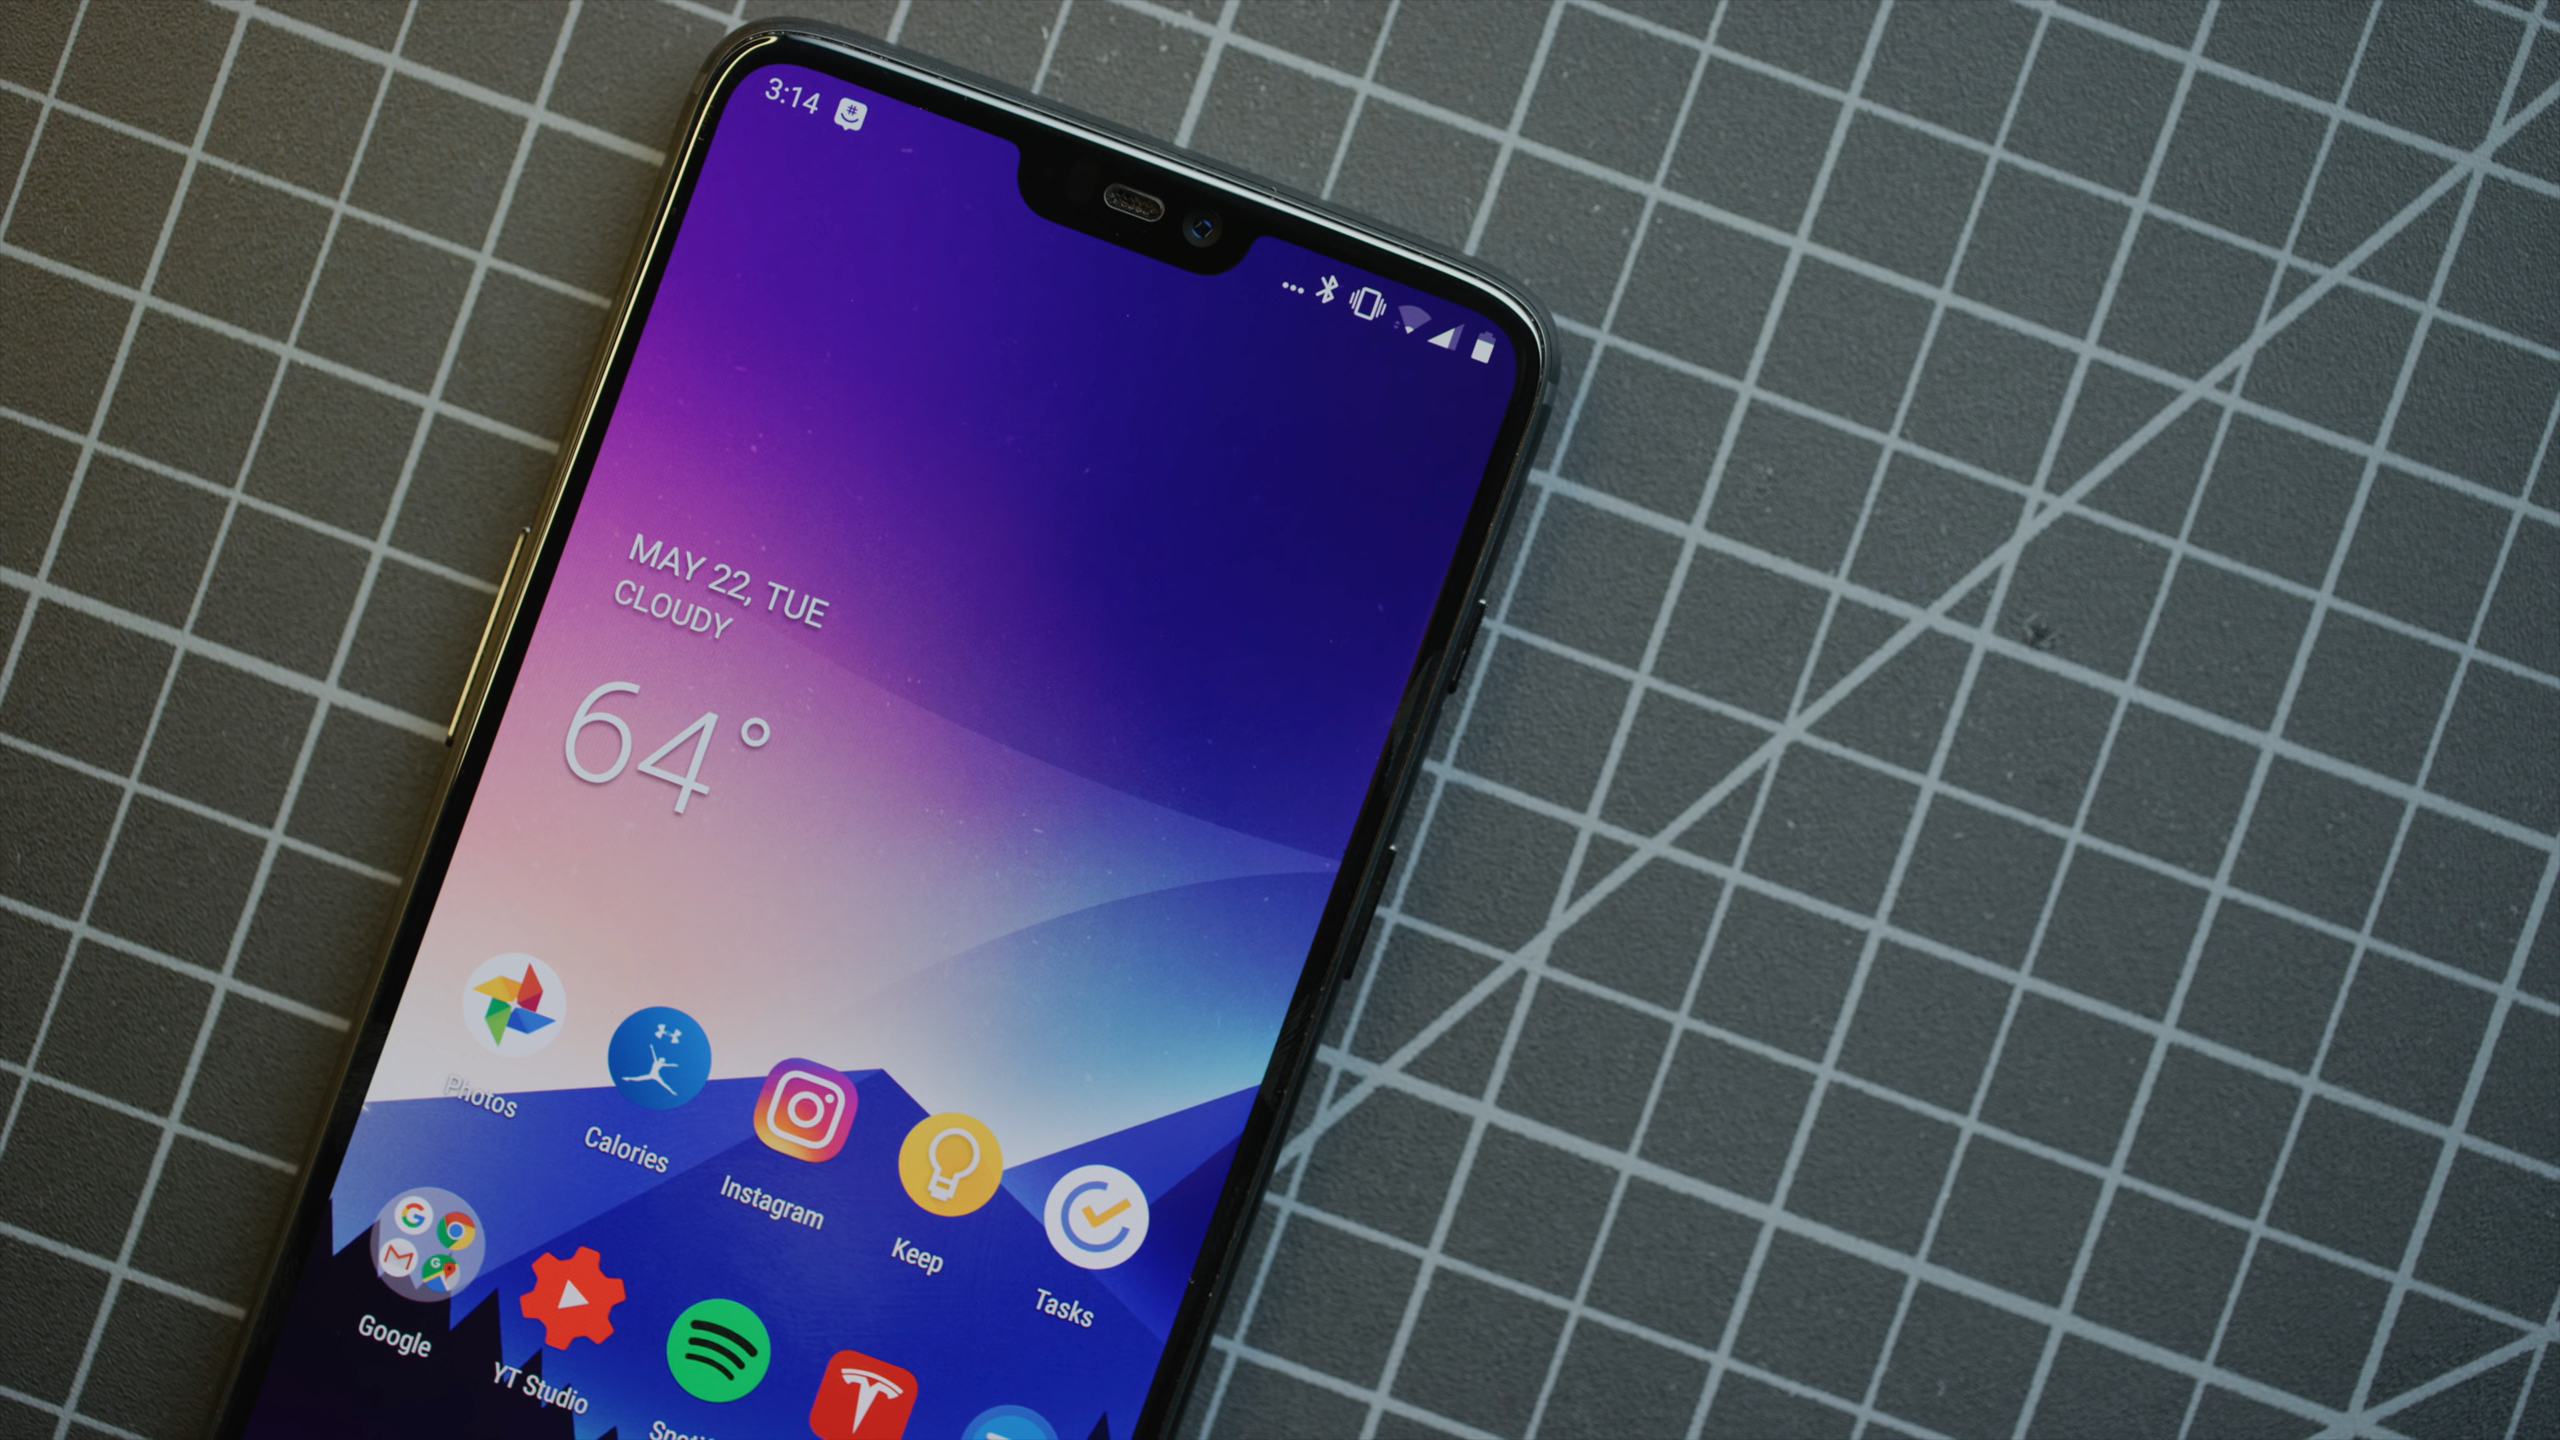 OnePlus 6 running OxygenOS on top of Android OS